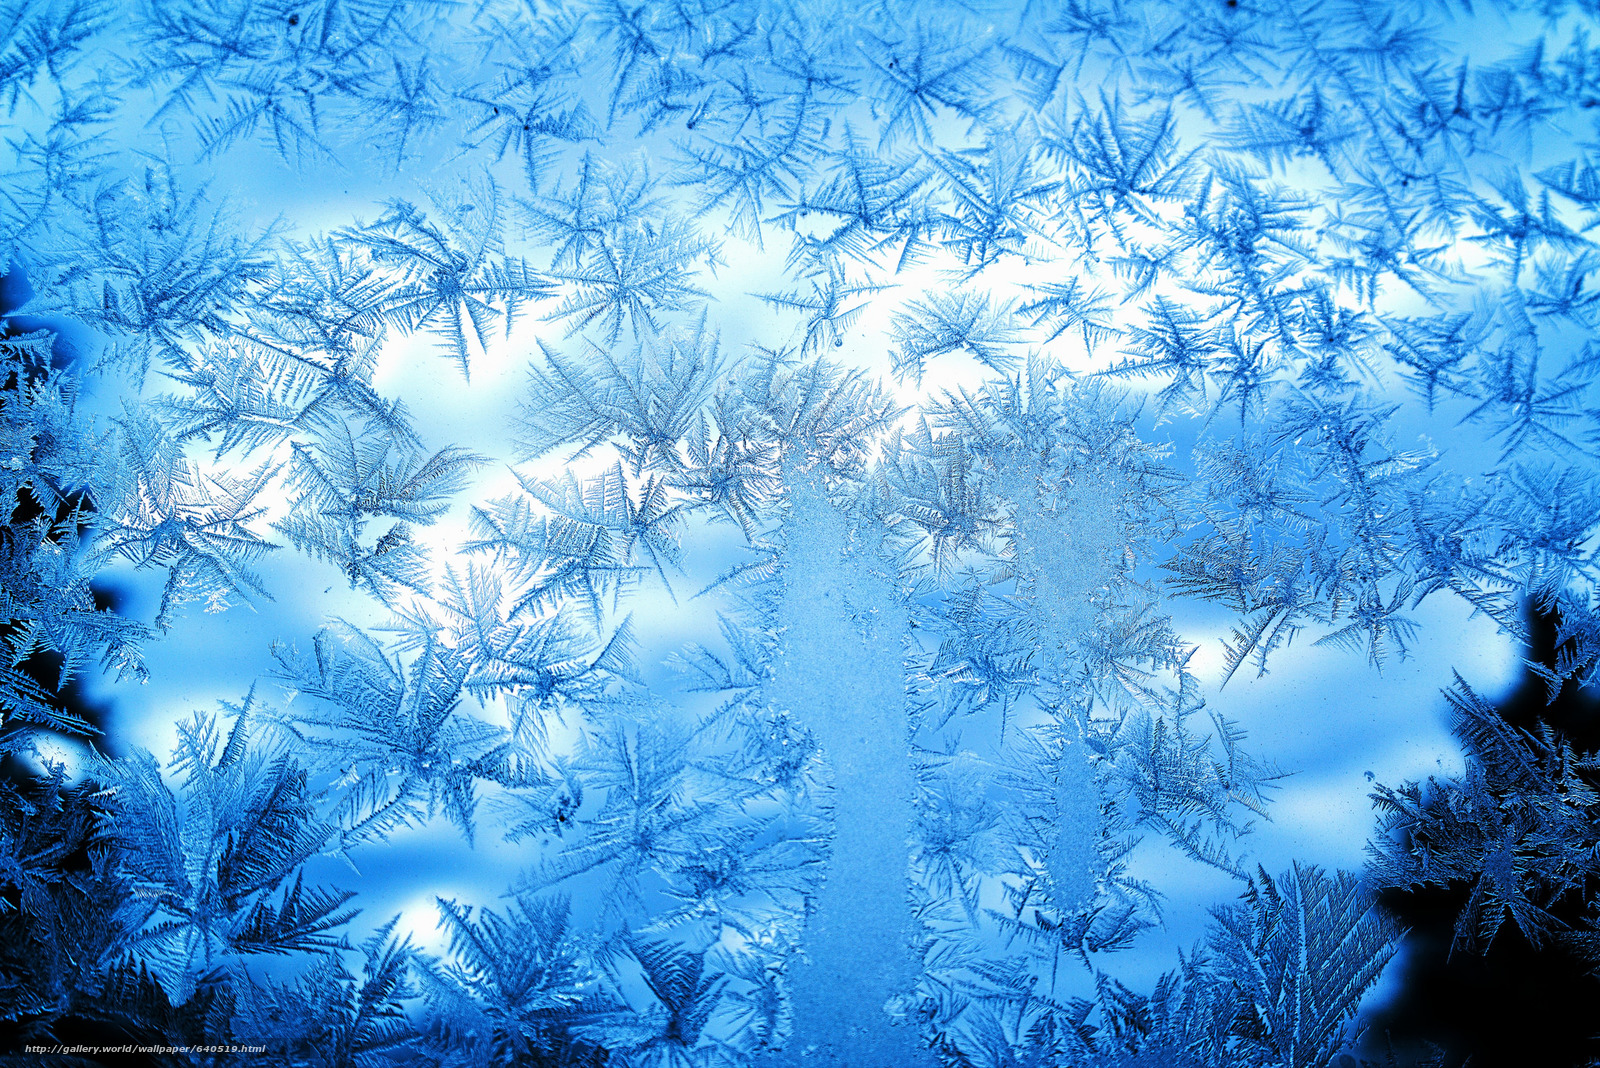 frost on glass wallpapers - photo #15